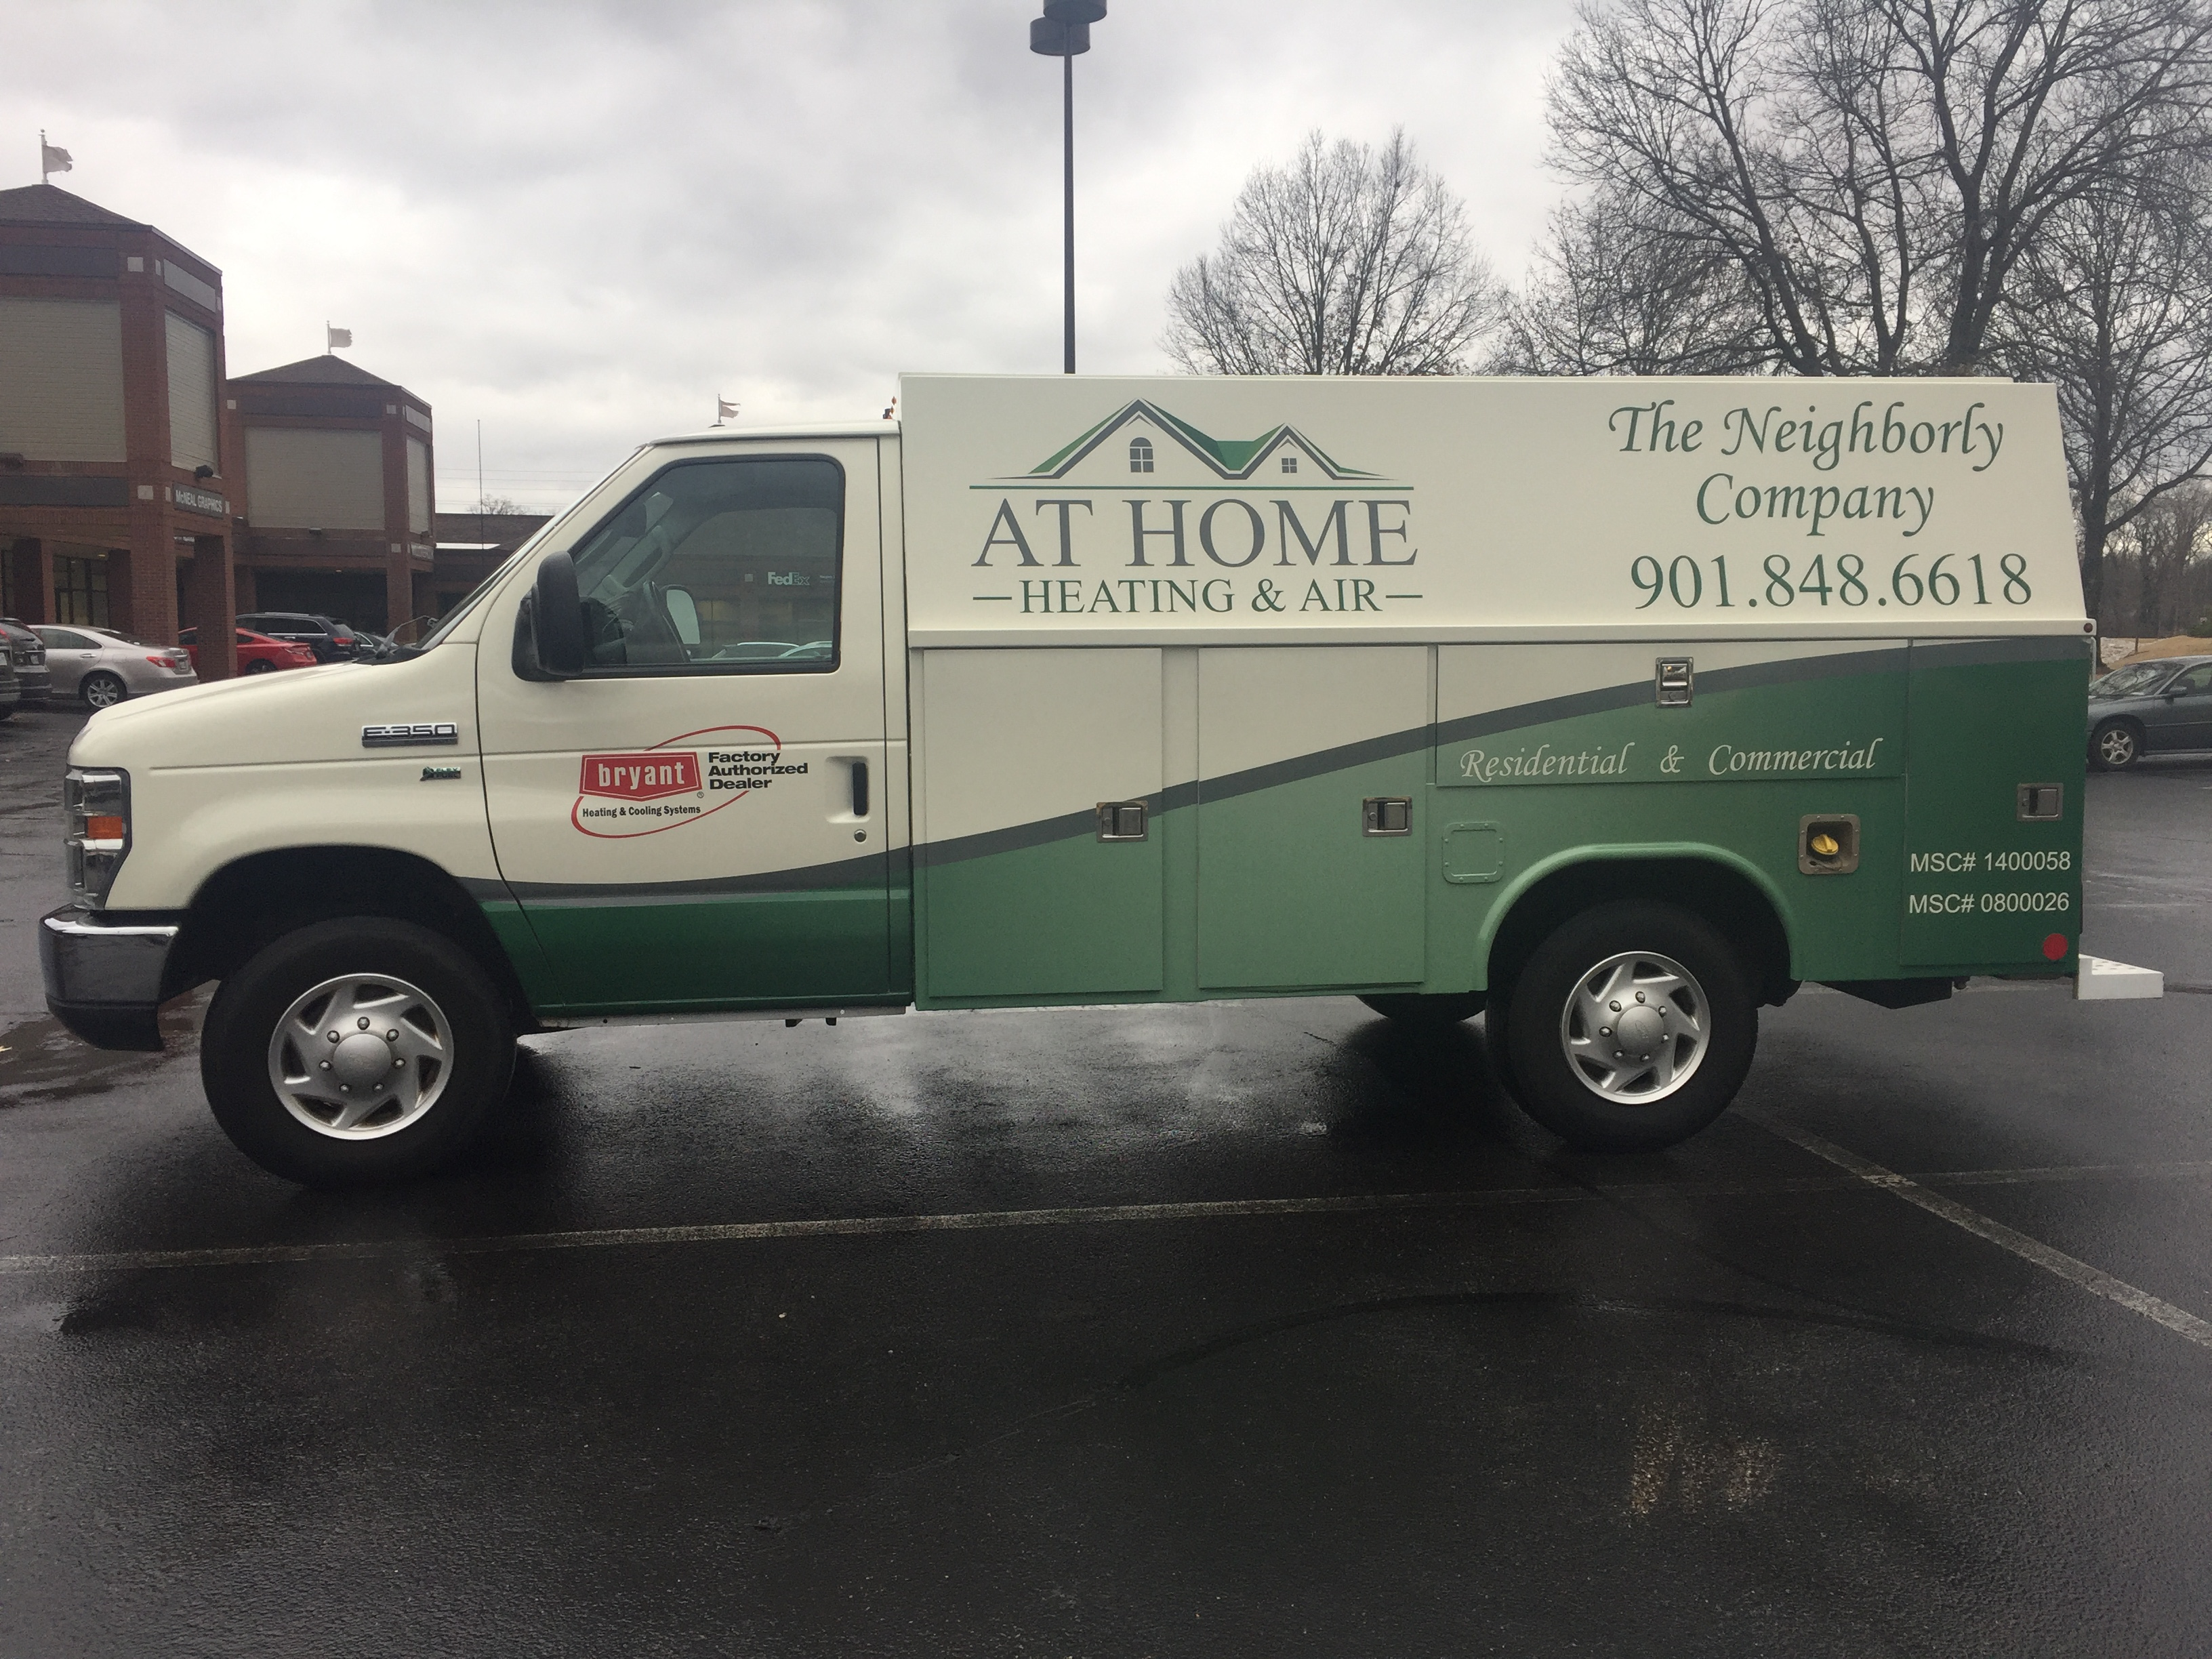 AT HOME Heating & Air